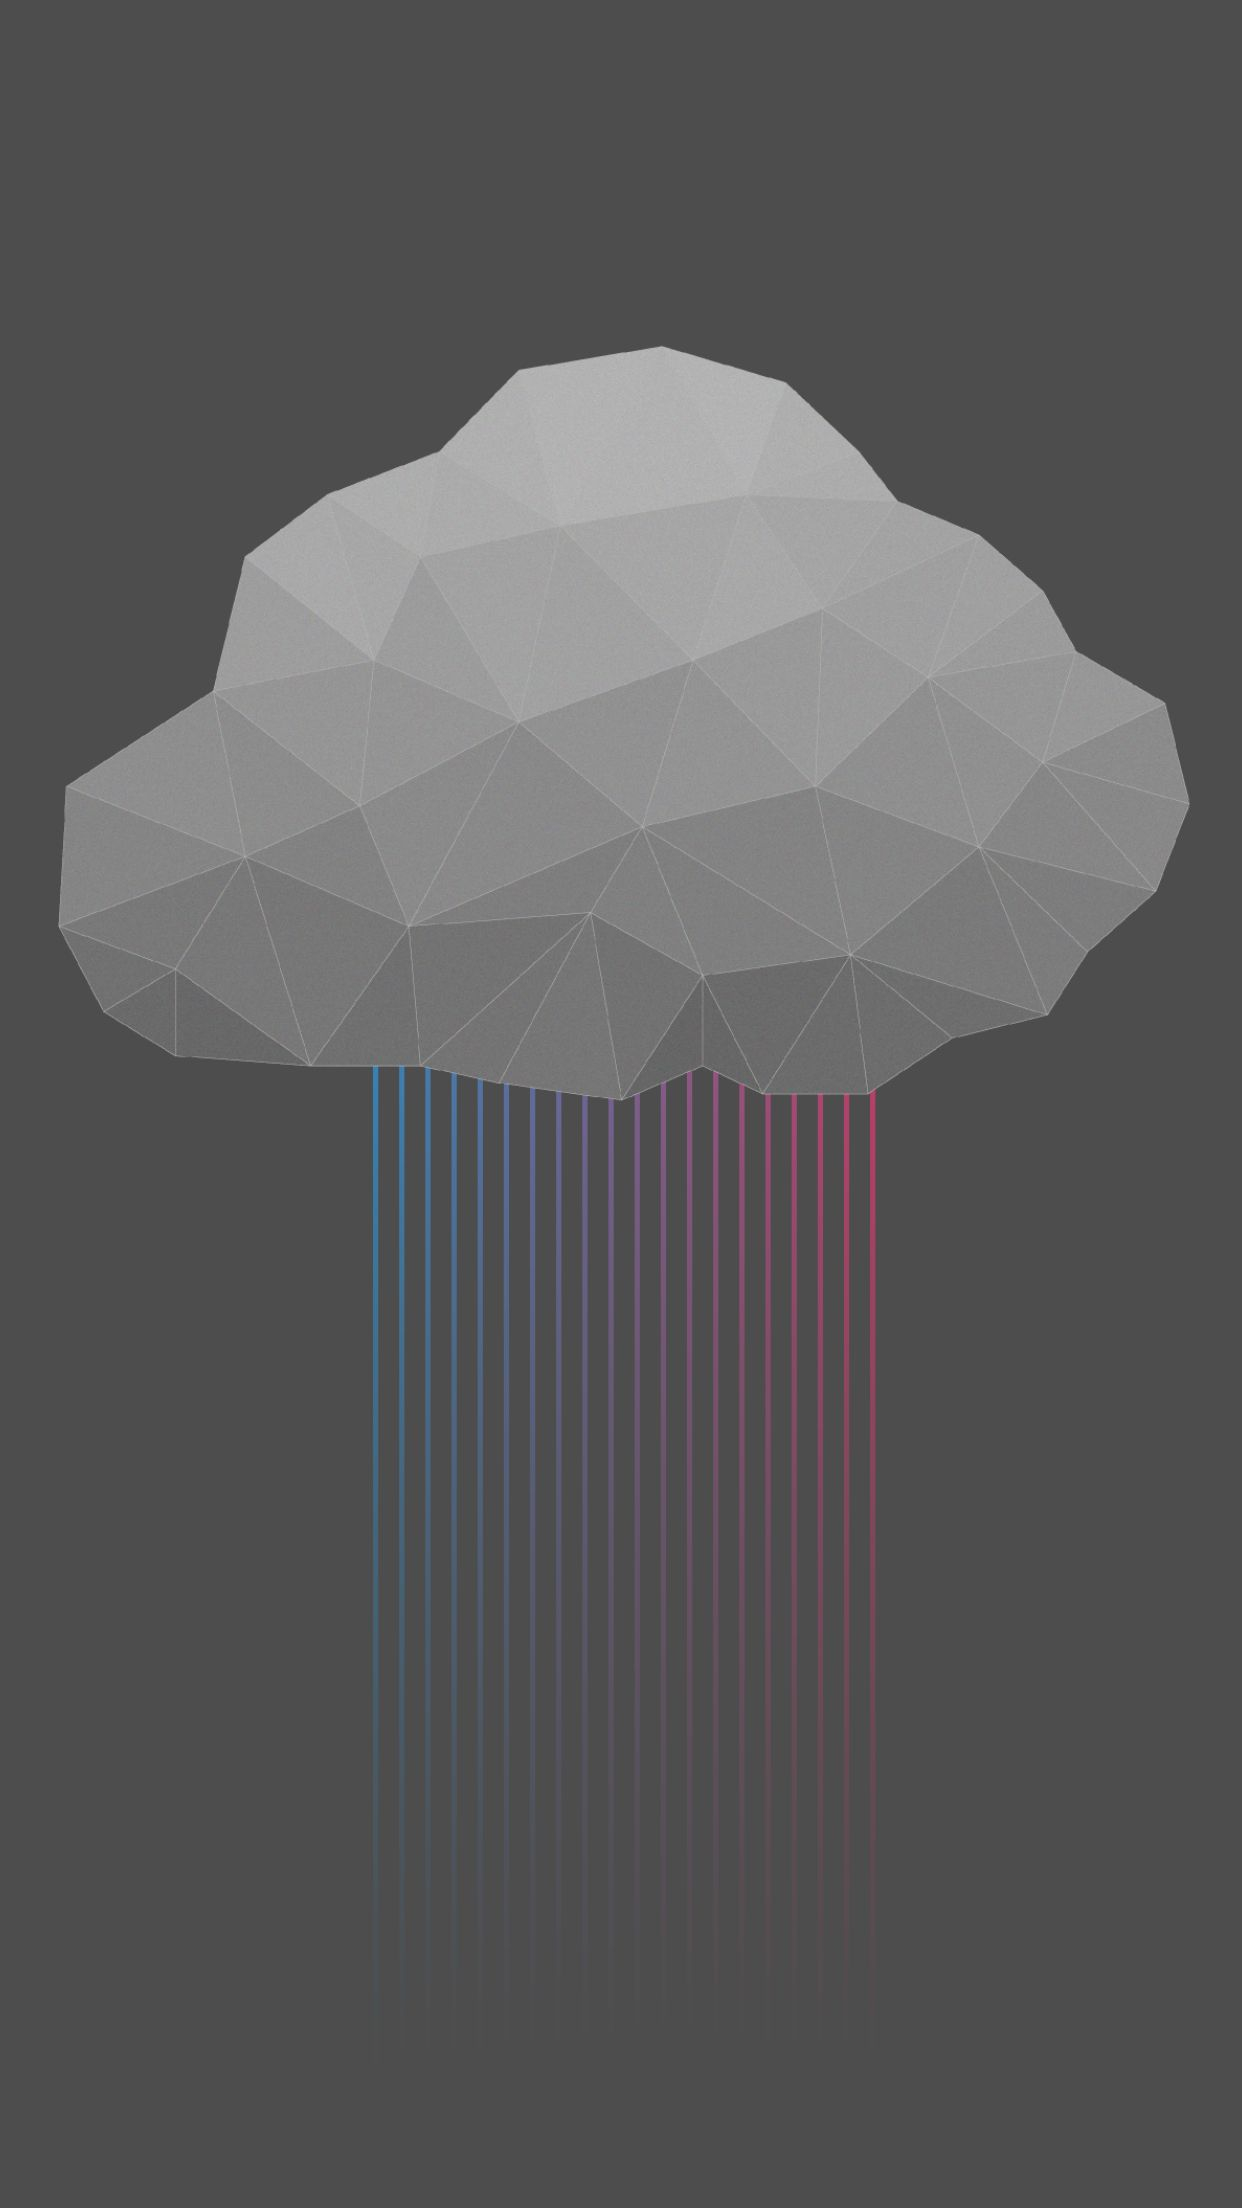 Digital Cloud Rain iPhone Wallpaper